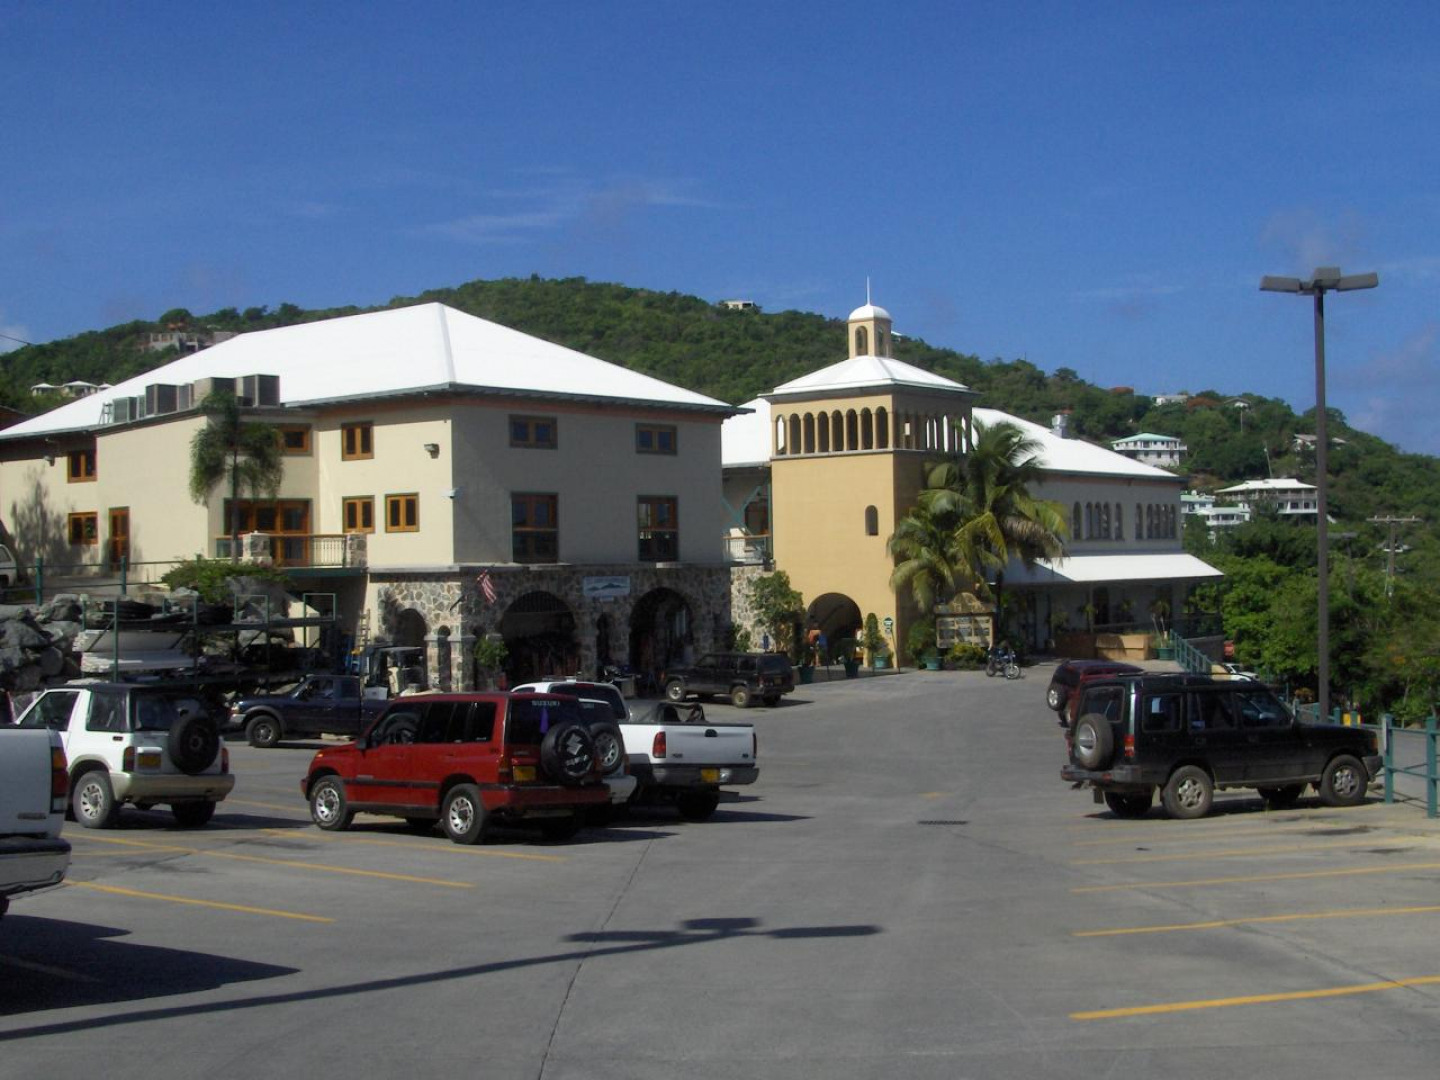 4a Enighed, St  John, USVI 00830, MLS# 08-313 | Holiday Homes